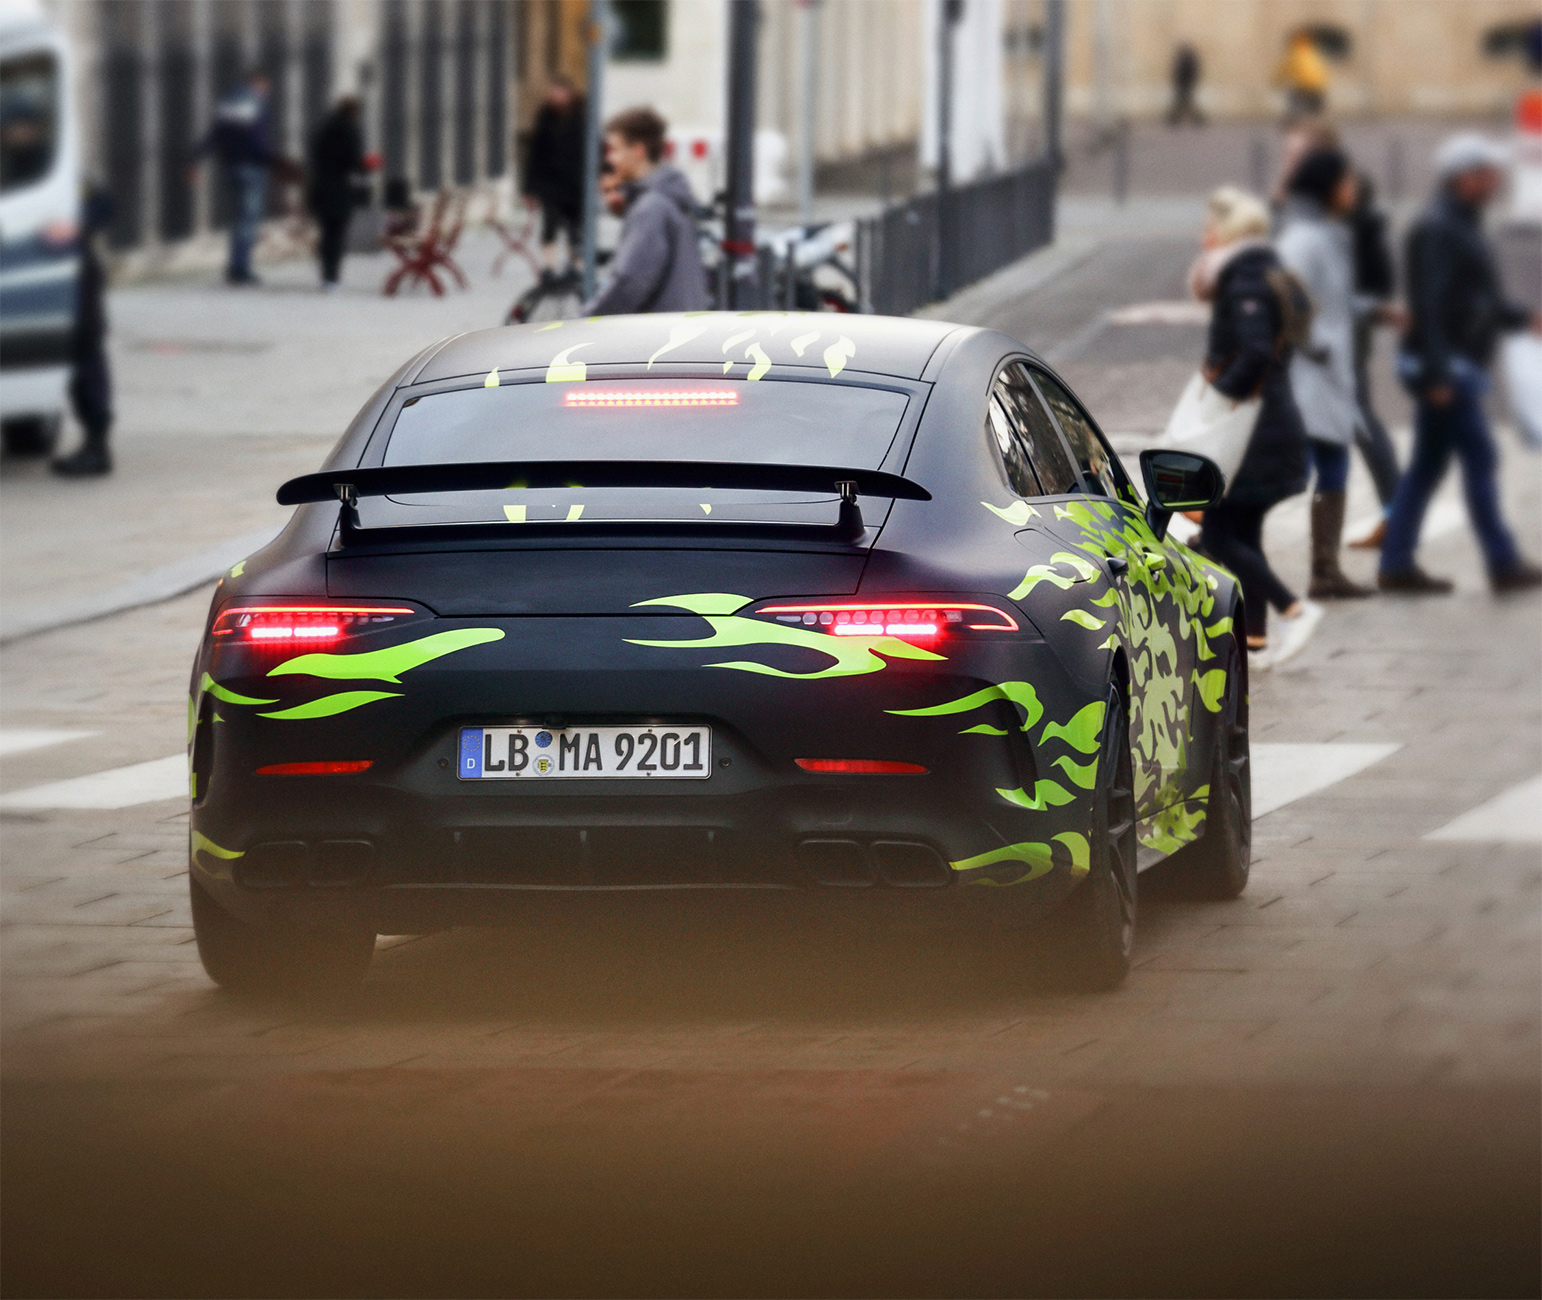 First Ever Mercedes Amg Gt 4 Door Coupe To Be Revealed At